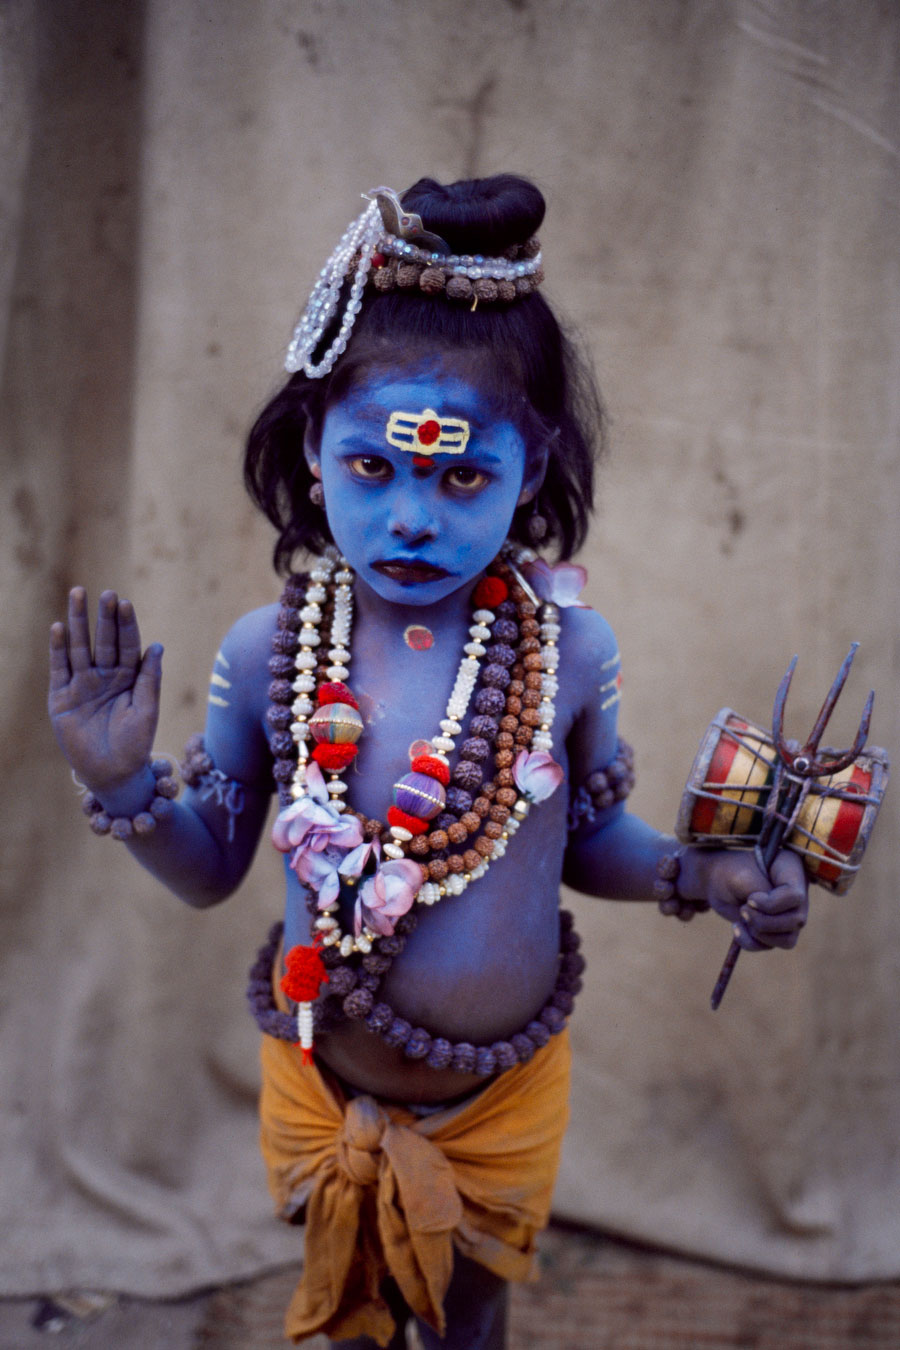 Steve-McCurry-India-Photography-6b